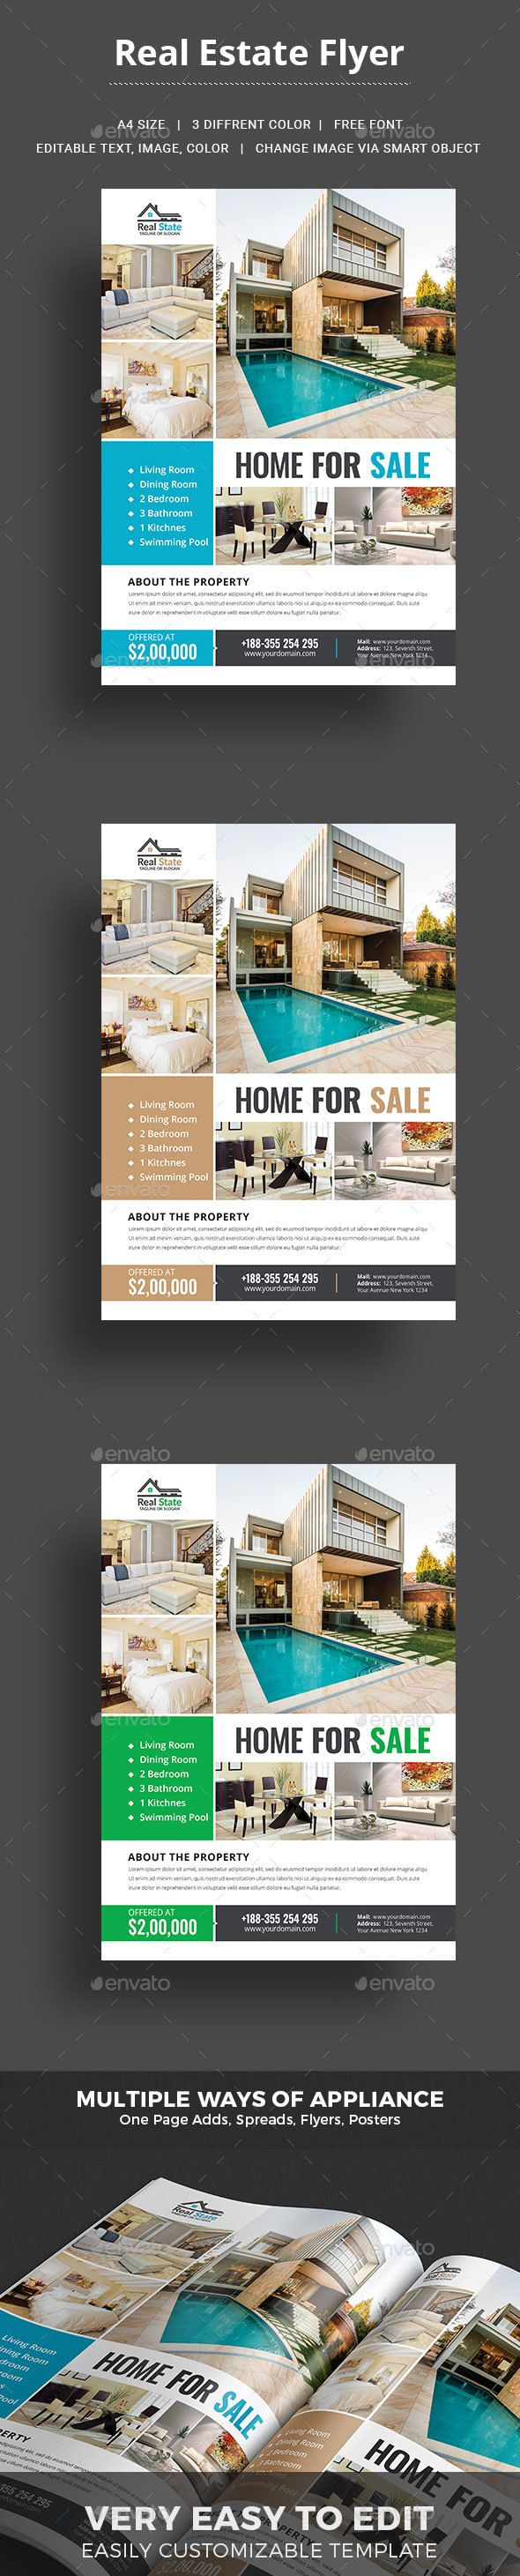 This #Real #Estate #Flyer #Template is a great tool for promoting your real estate business also useful for a realtor or a real estate agent. You can use it for real estate listings, advertising homes or property for sale,or houses for rent.